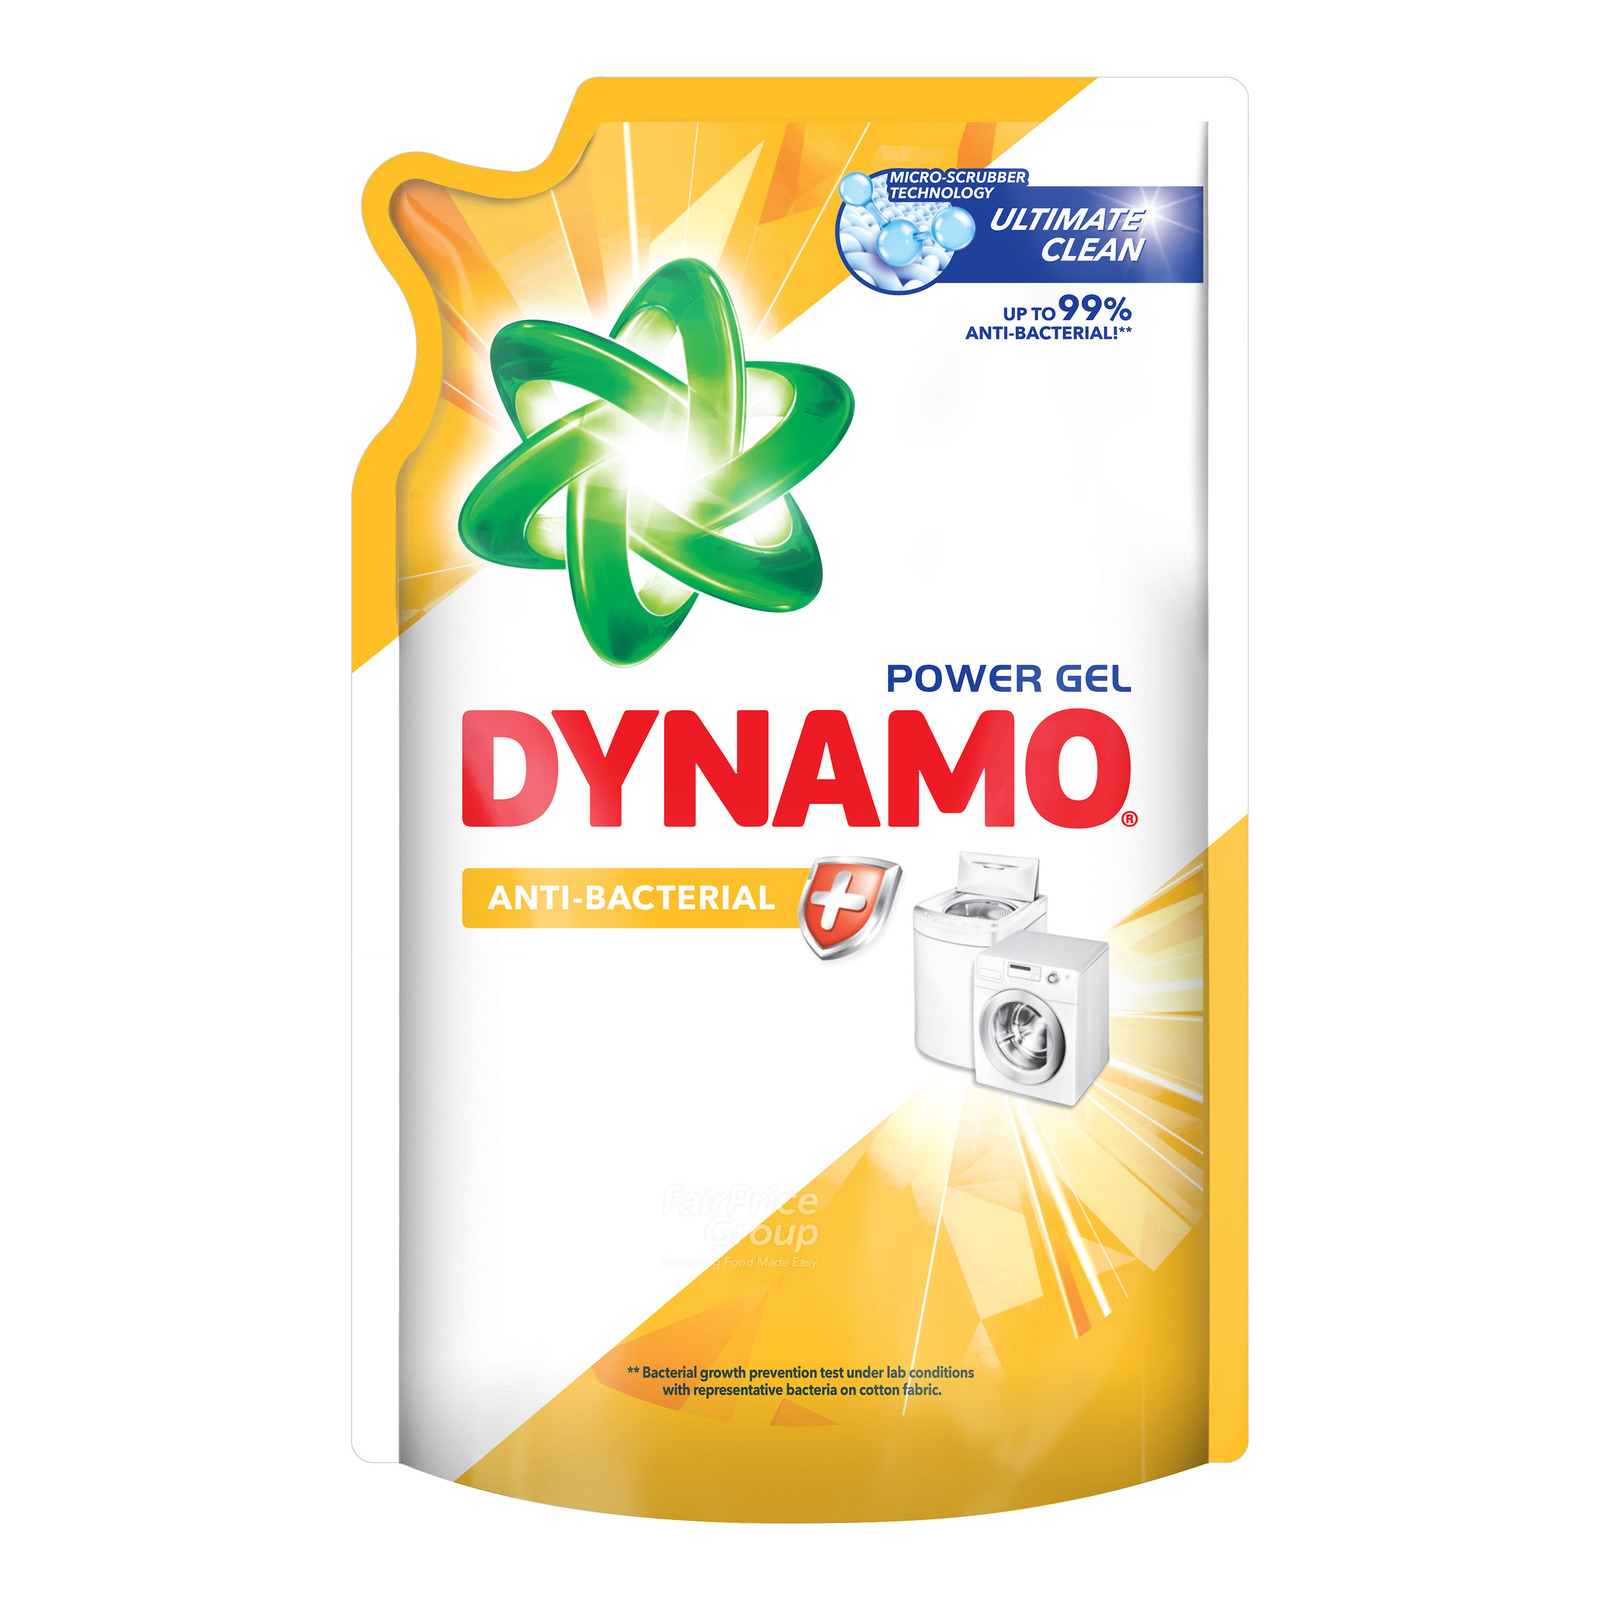 Dynamo Power Gel Laundry Detergent Refill - Anti-bacterial